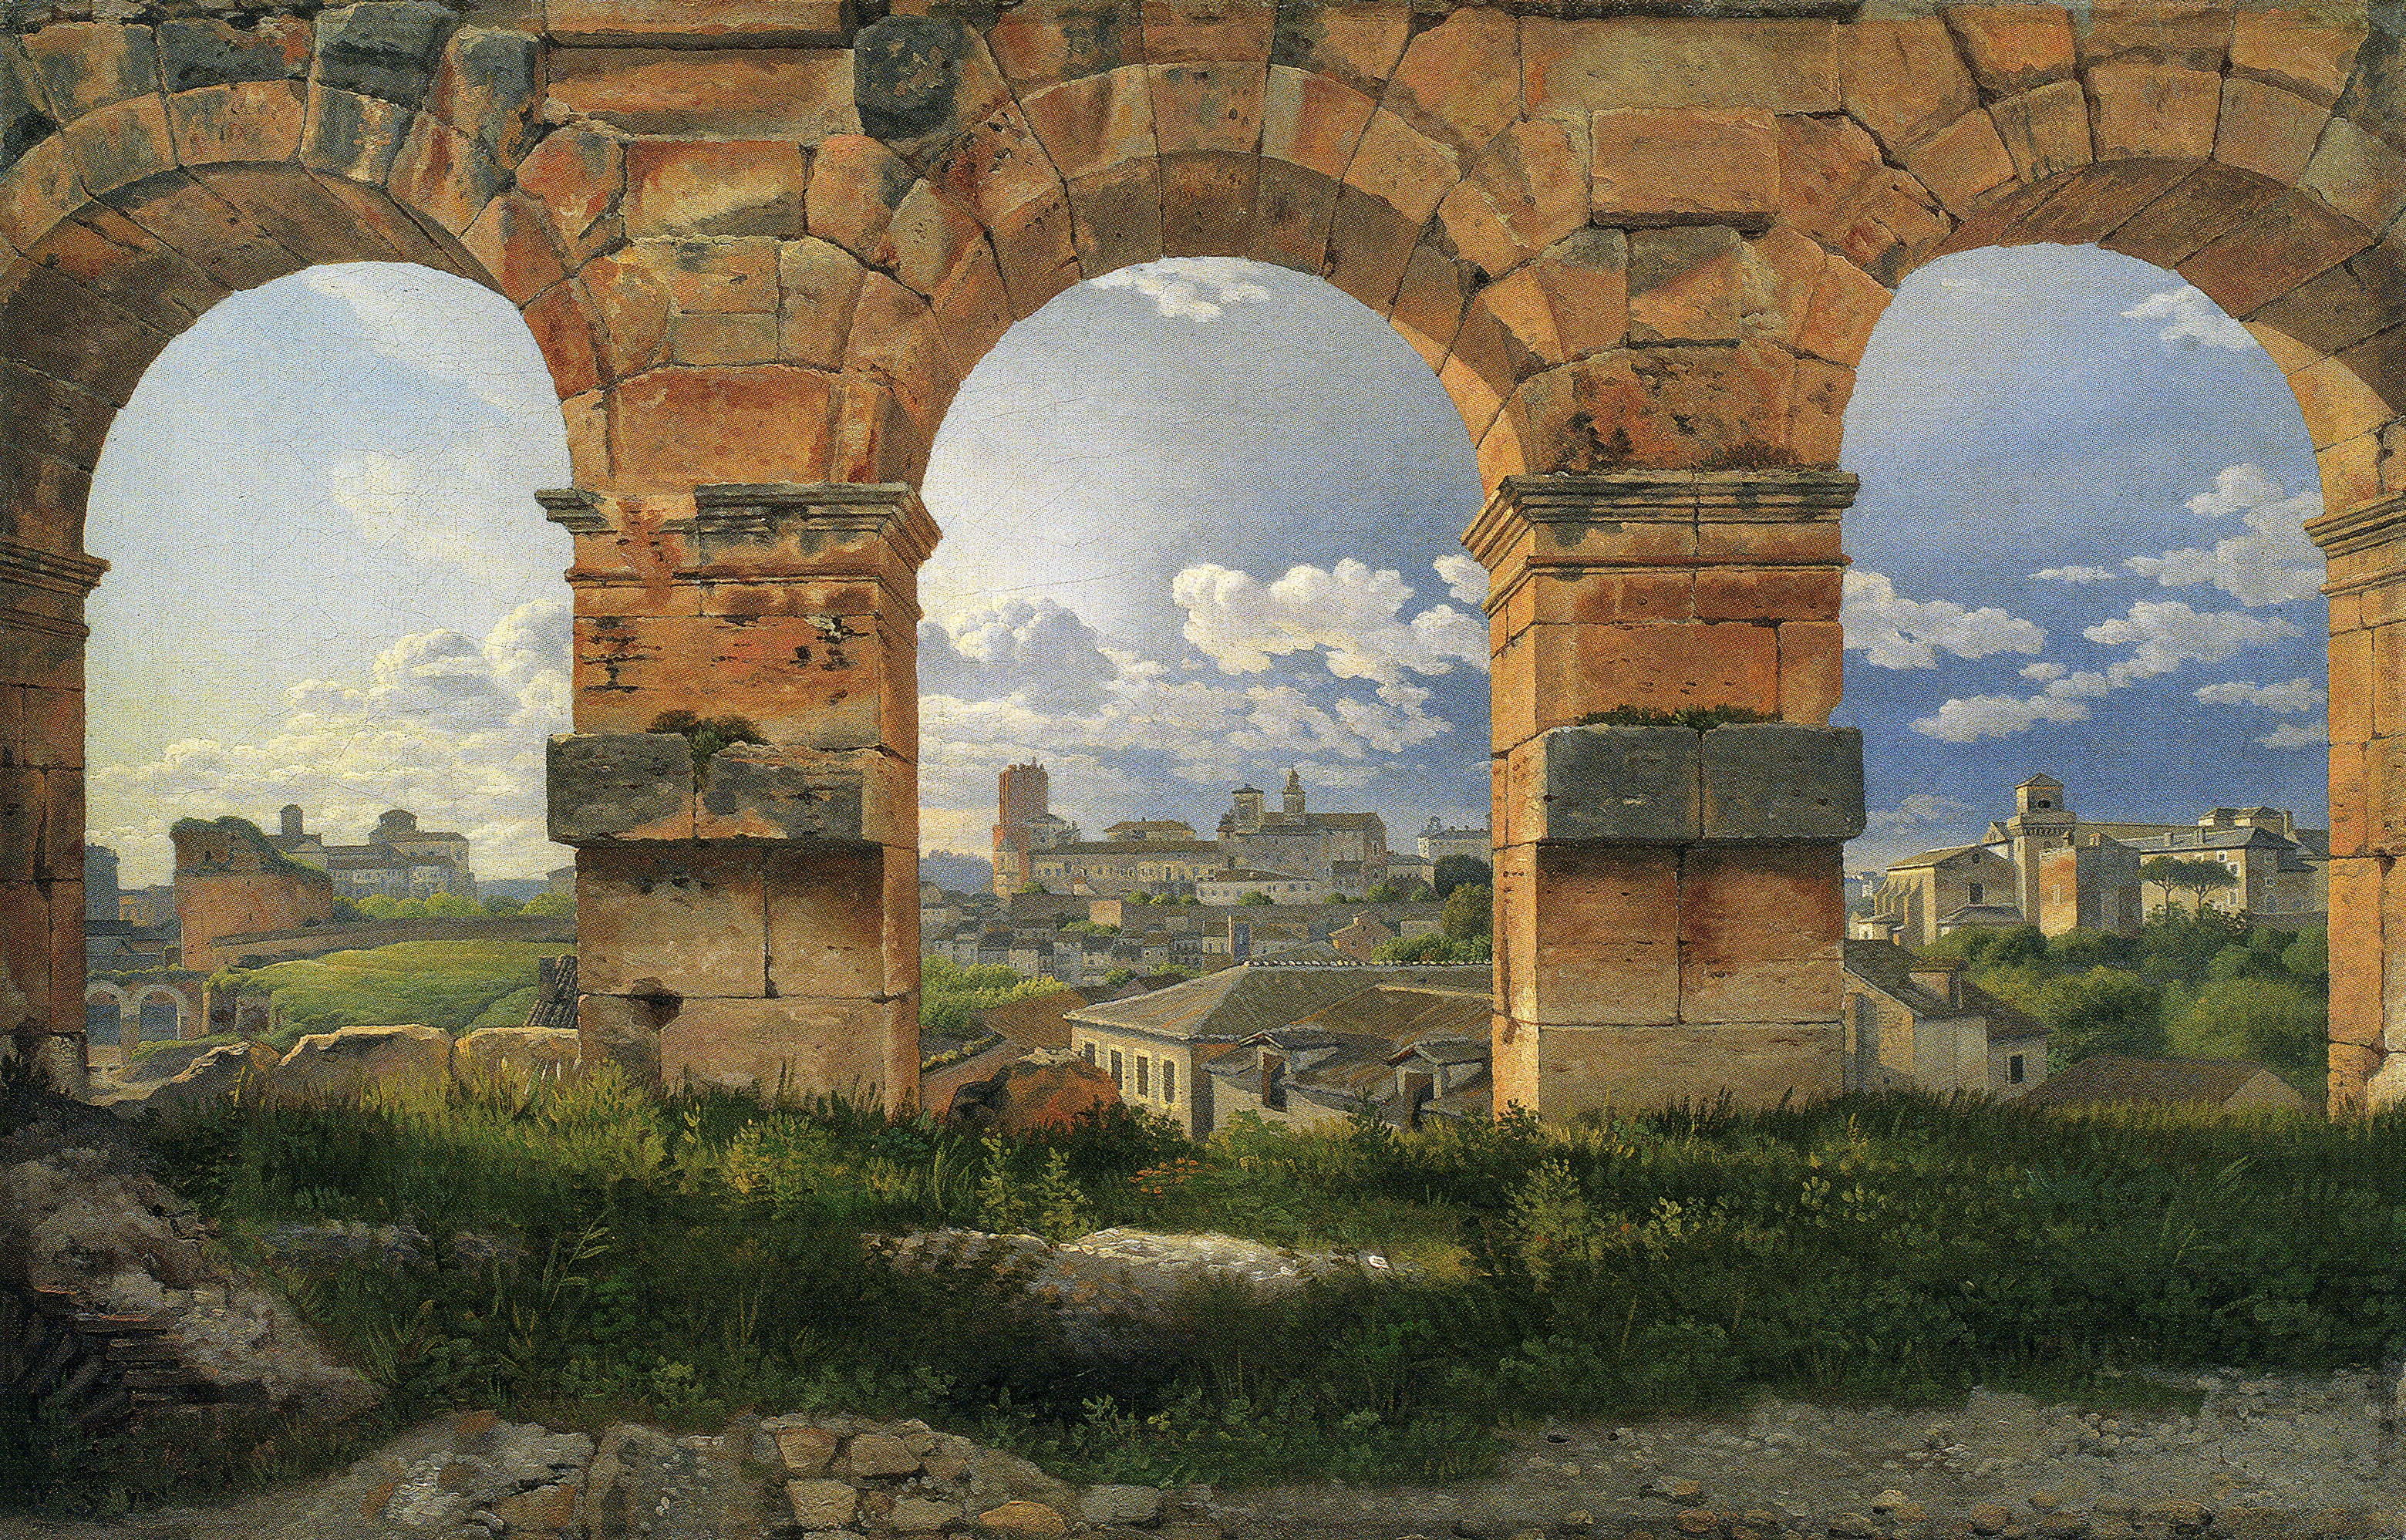 Eckersberg_A View through Three of the Arches of the Coliseum in Rome, 1815_p159